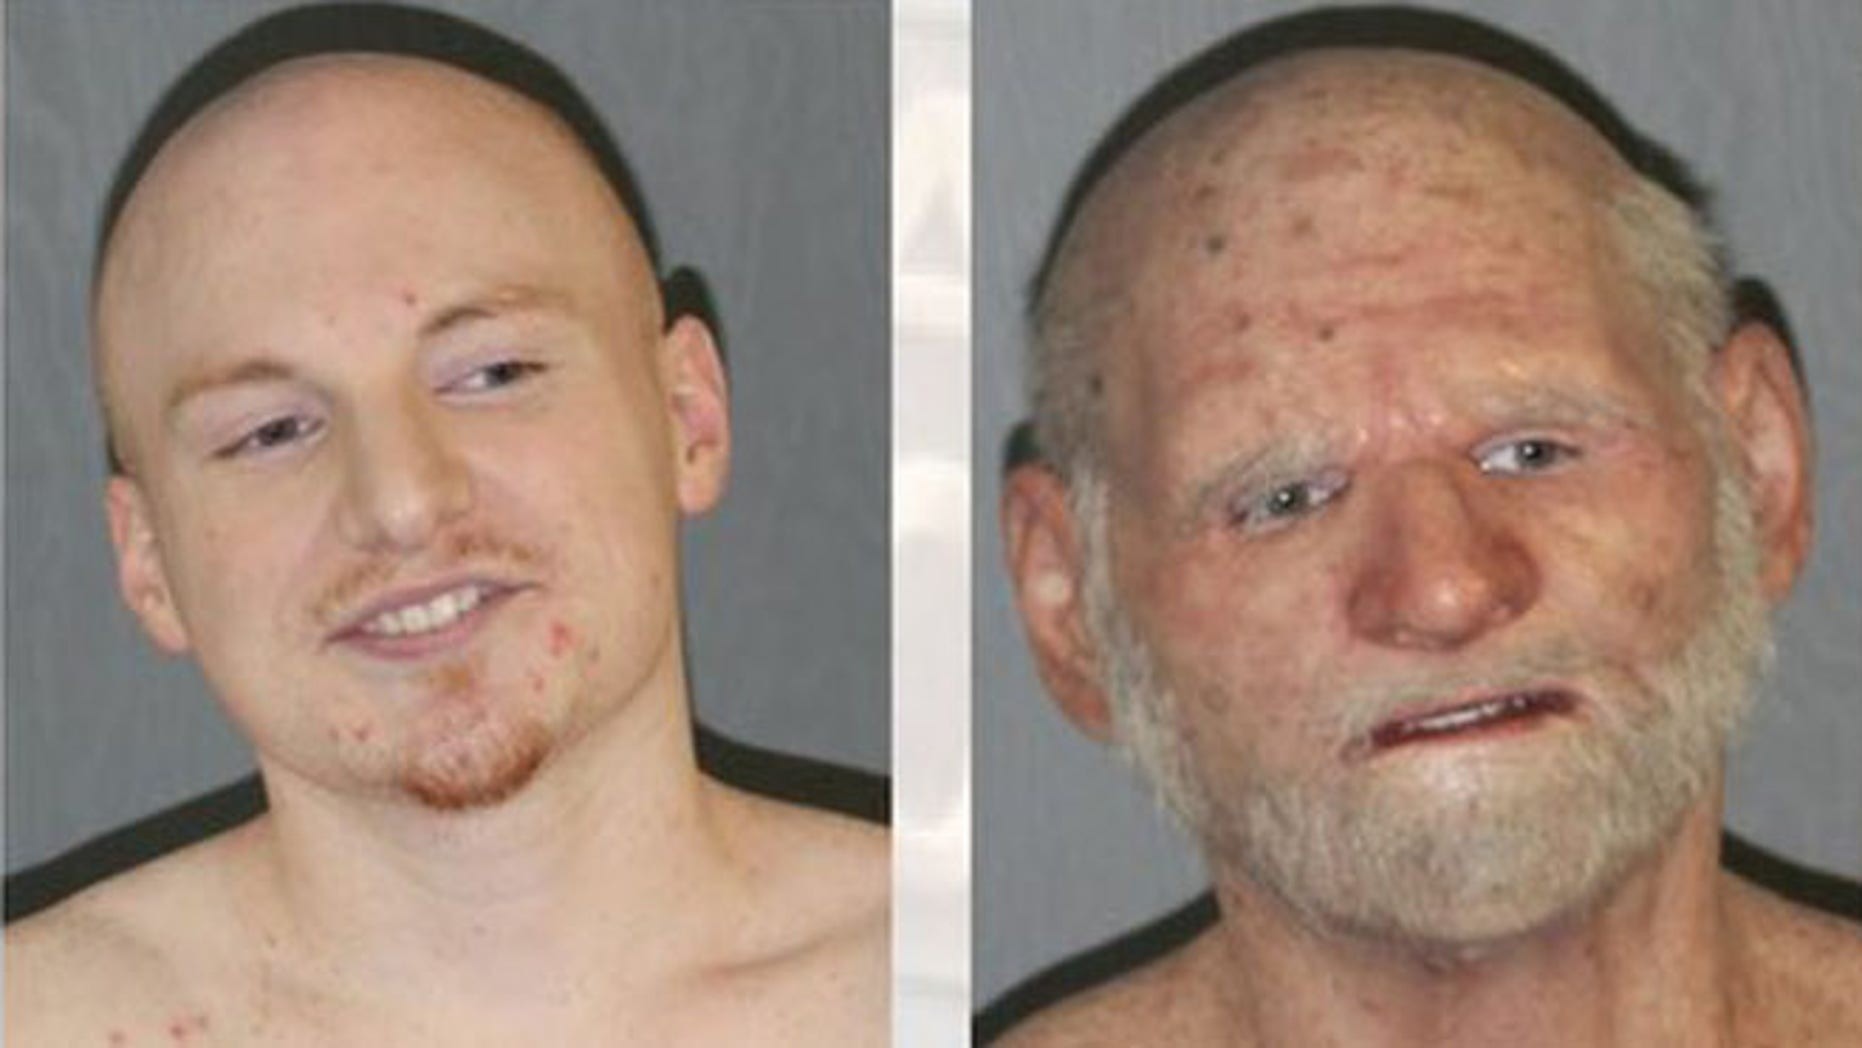 """Police say they found fugitive Shaun Miller, 31, at a Massachusetts home disguised as an """"elderly man."""" (ATF)"""